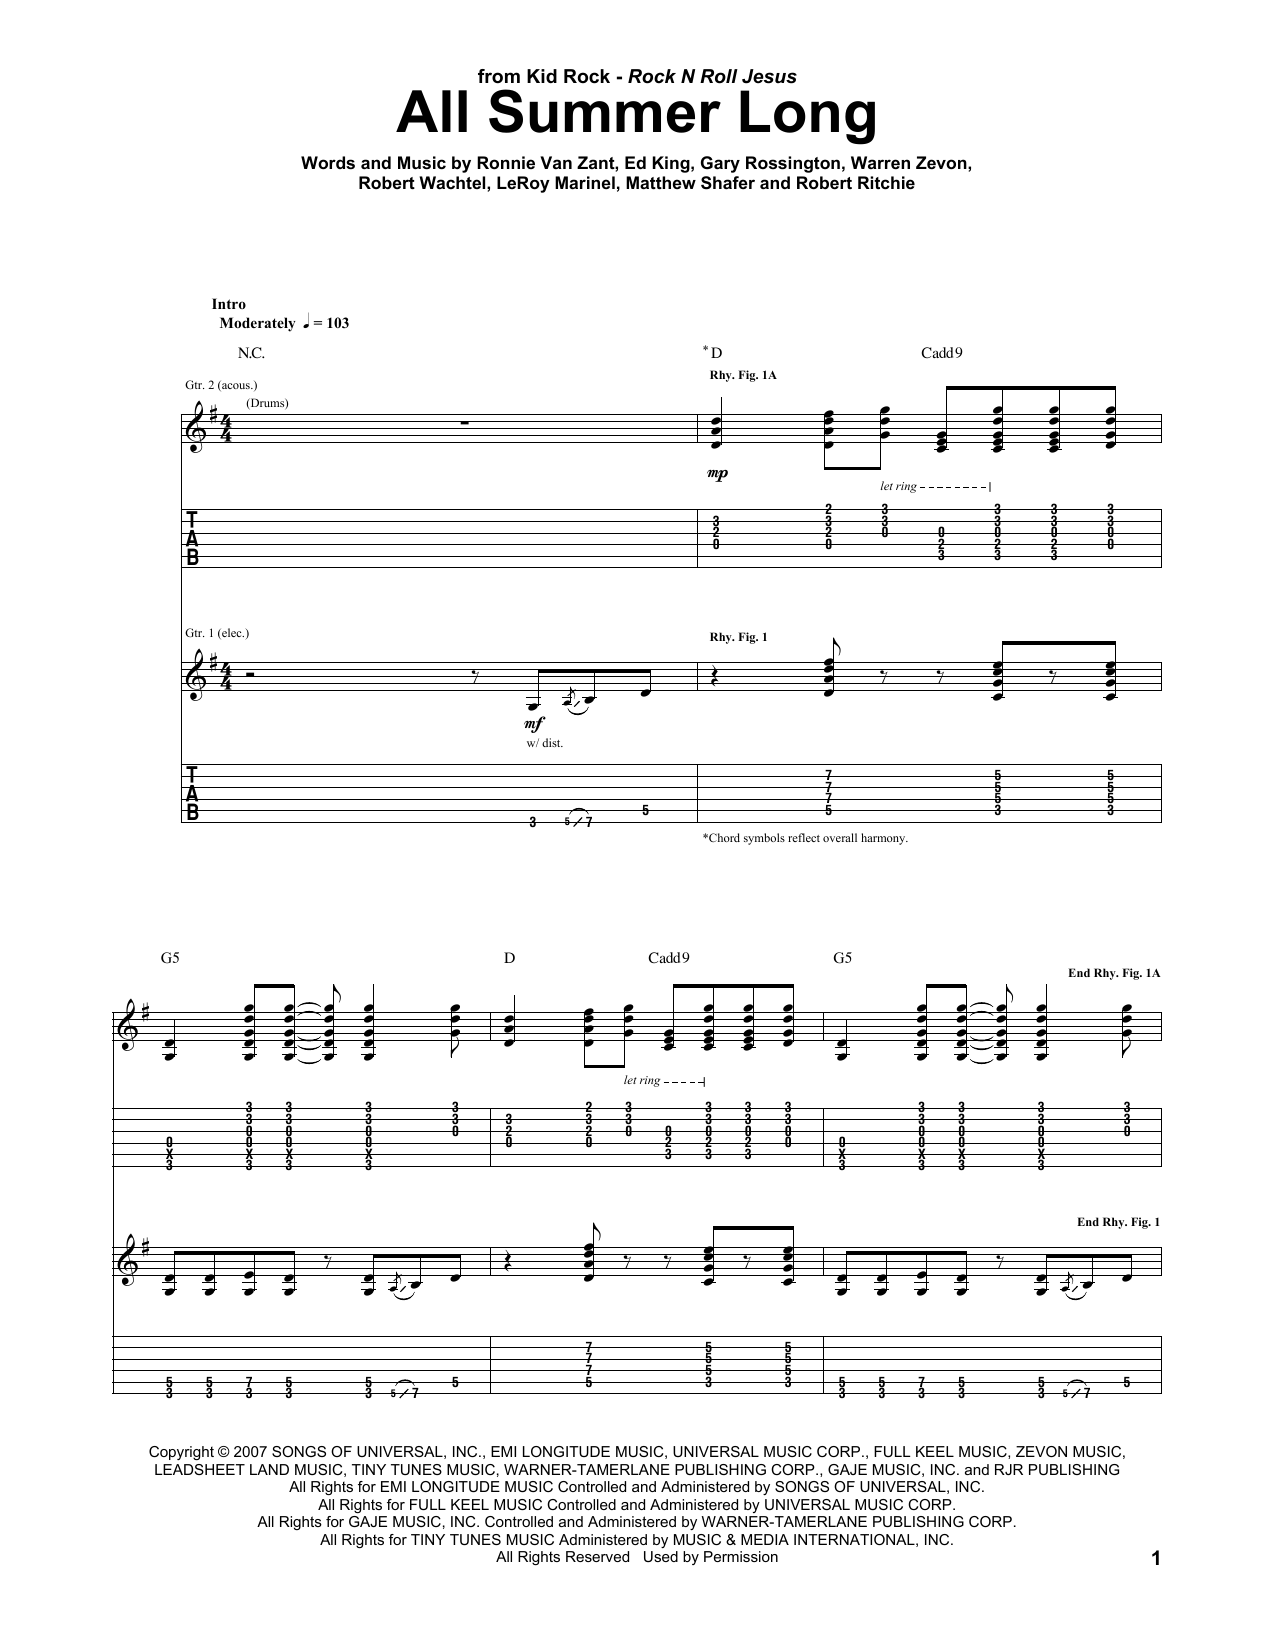 All summer long by kid rock guitar tab guitar instructor the most accurate tab hexwebz Images